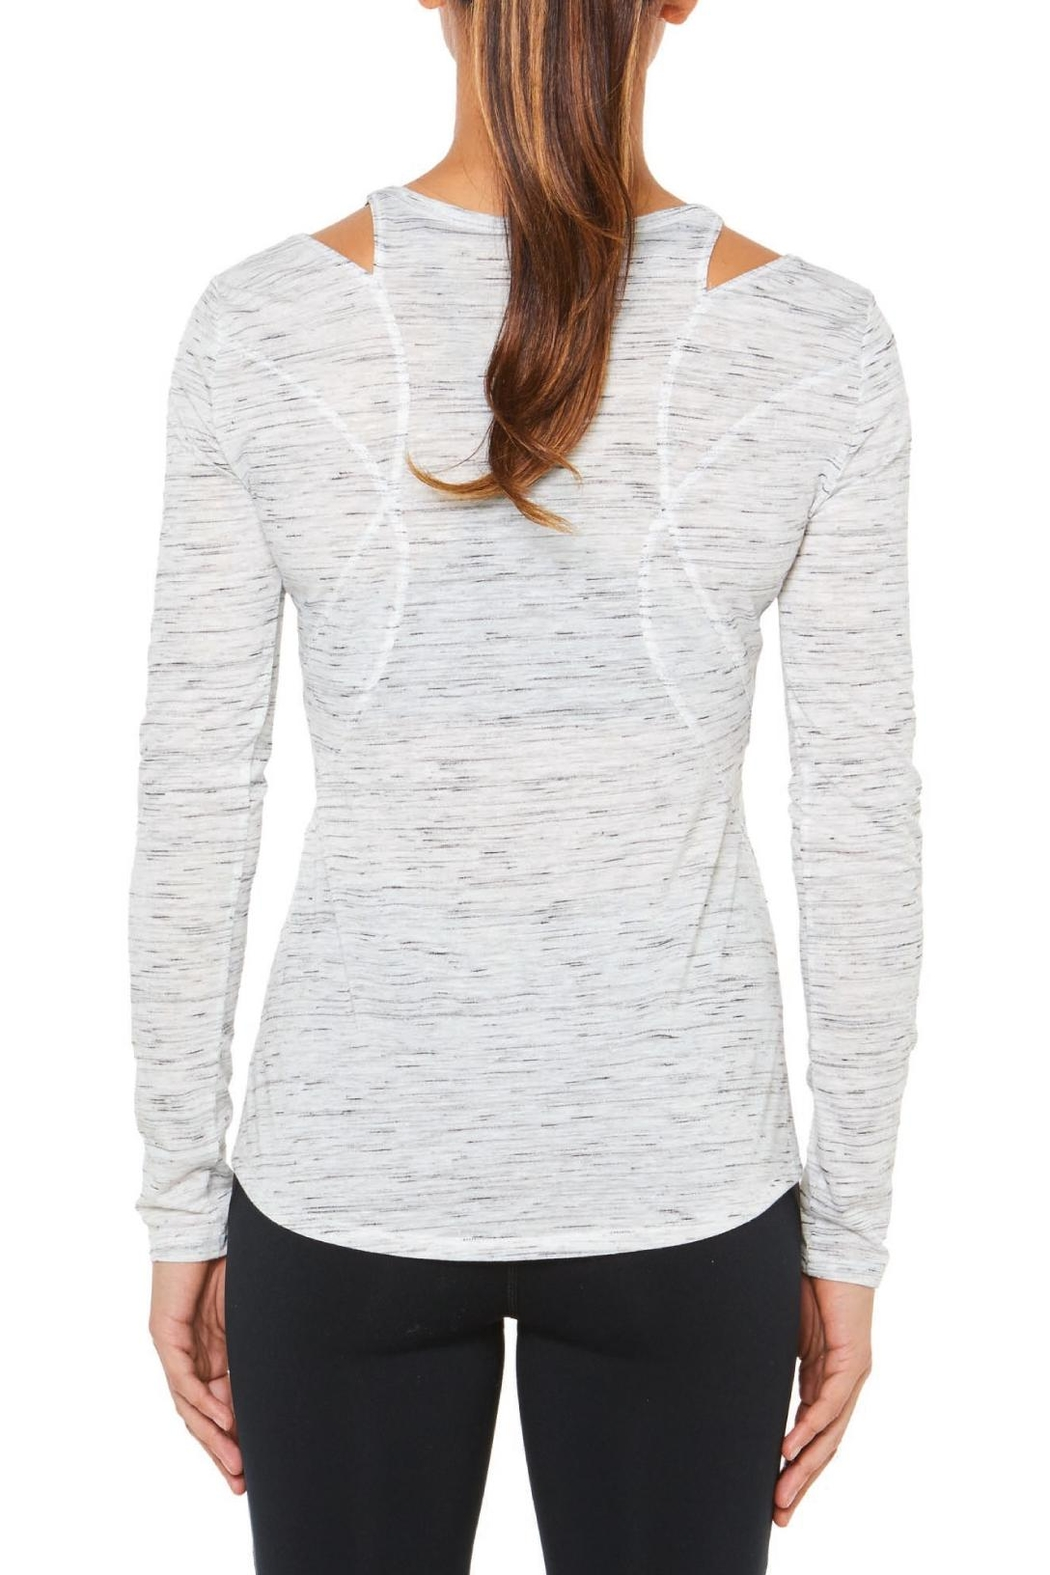 SHAPE Activewear V Neck Tee - Front Full Image